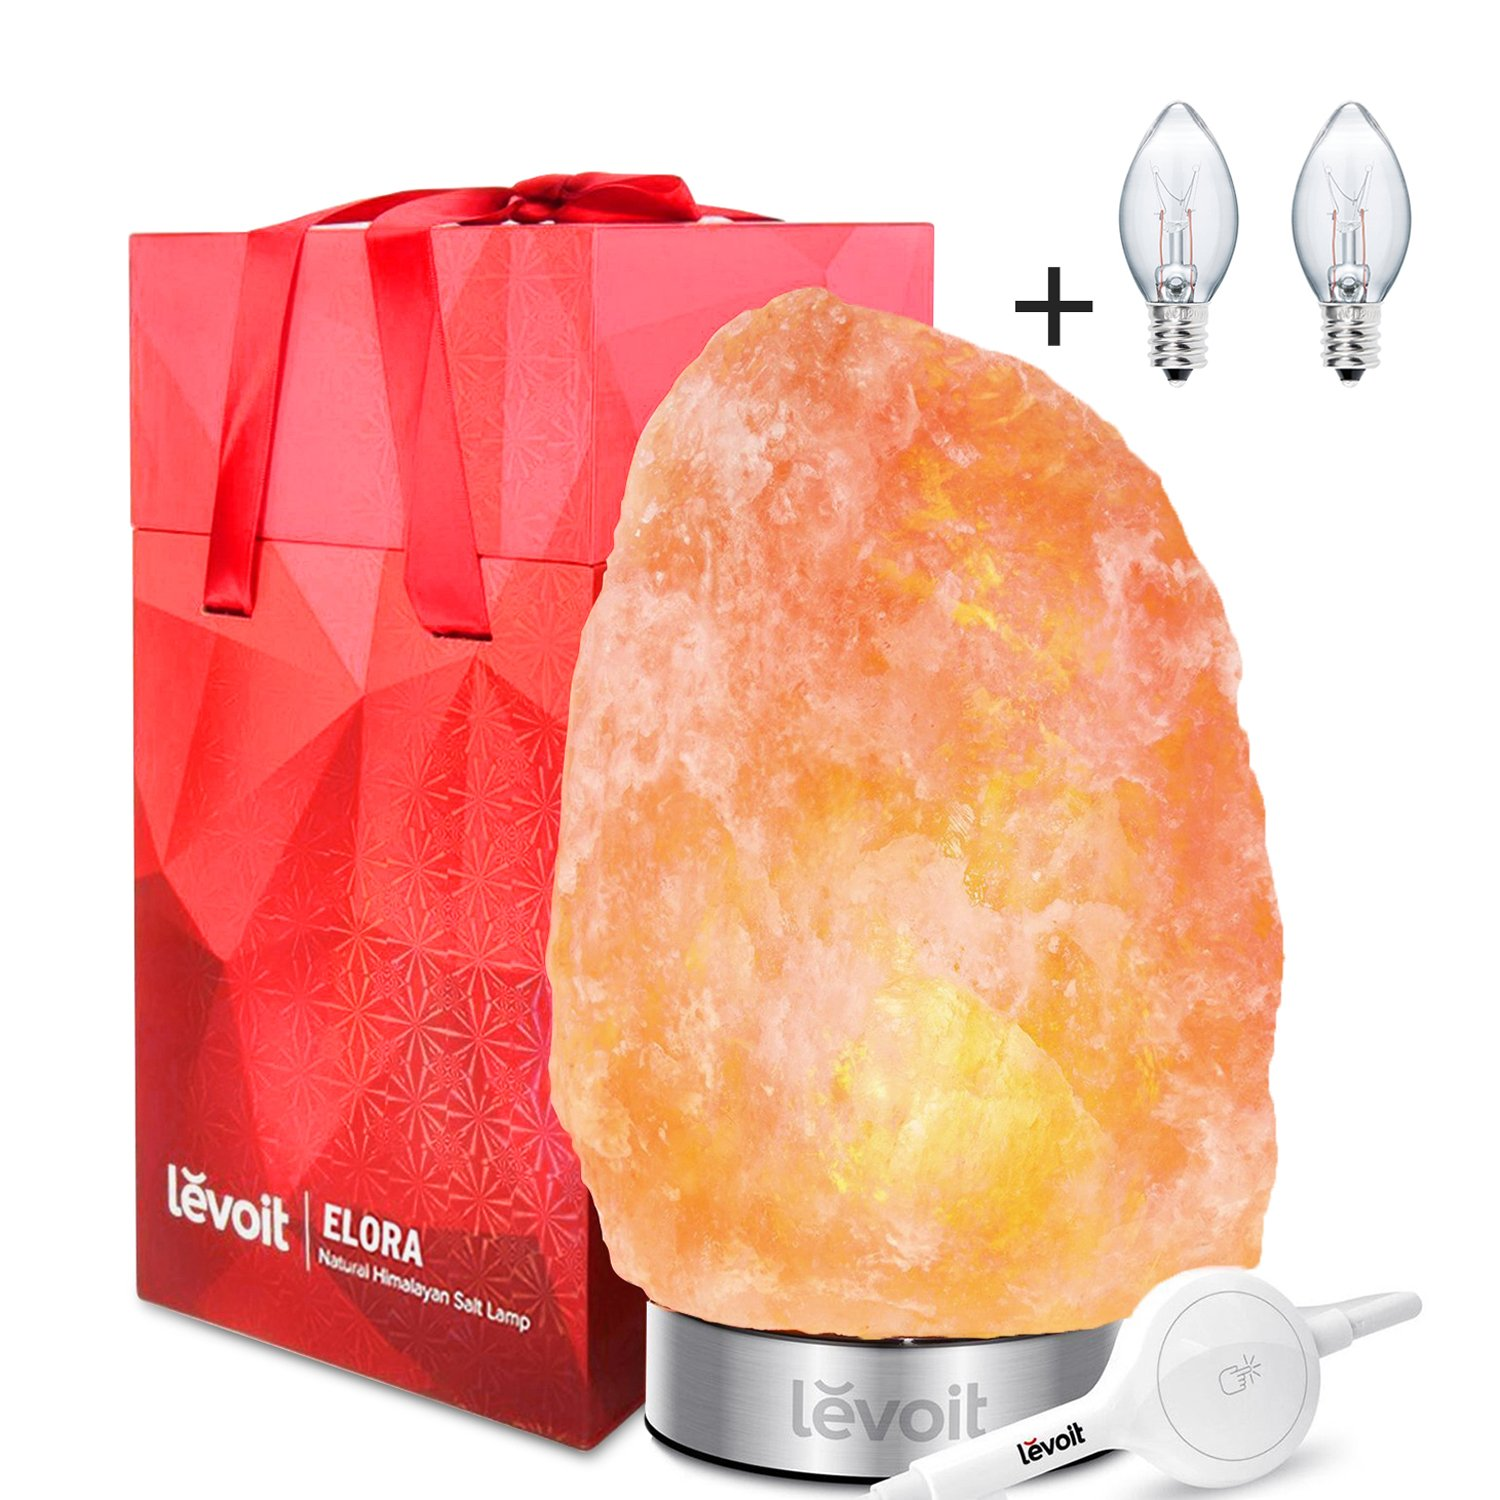 Levoit Aurora Salt Lamp, Himalayan / Hymilain Sea Salt Lamps, Pink Large Salt Rock Lamp, Night Light, 18/8 Stainless Steel Base, Dimmable Touch Switch, Luxury Gift Box (ETL Certified, 2 Extra Bulbs) 783956545565